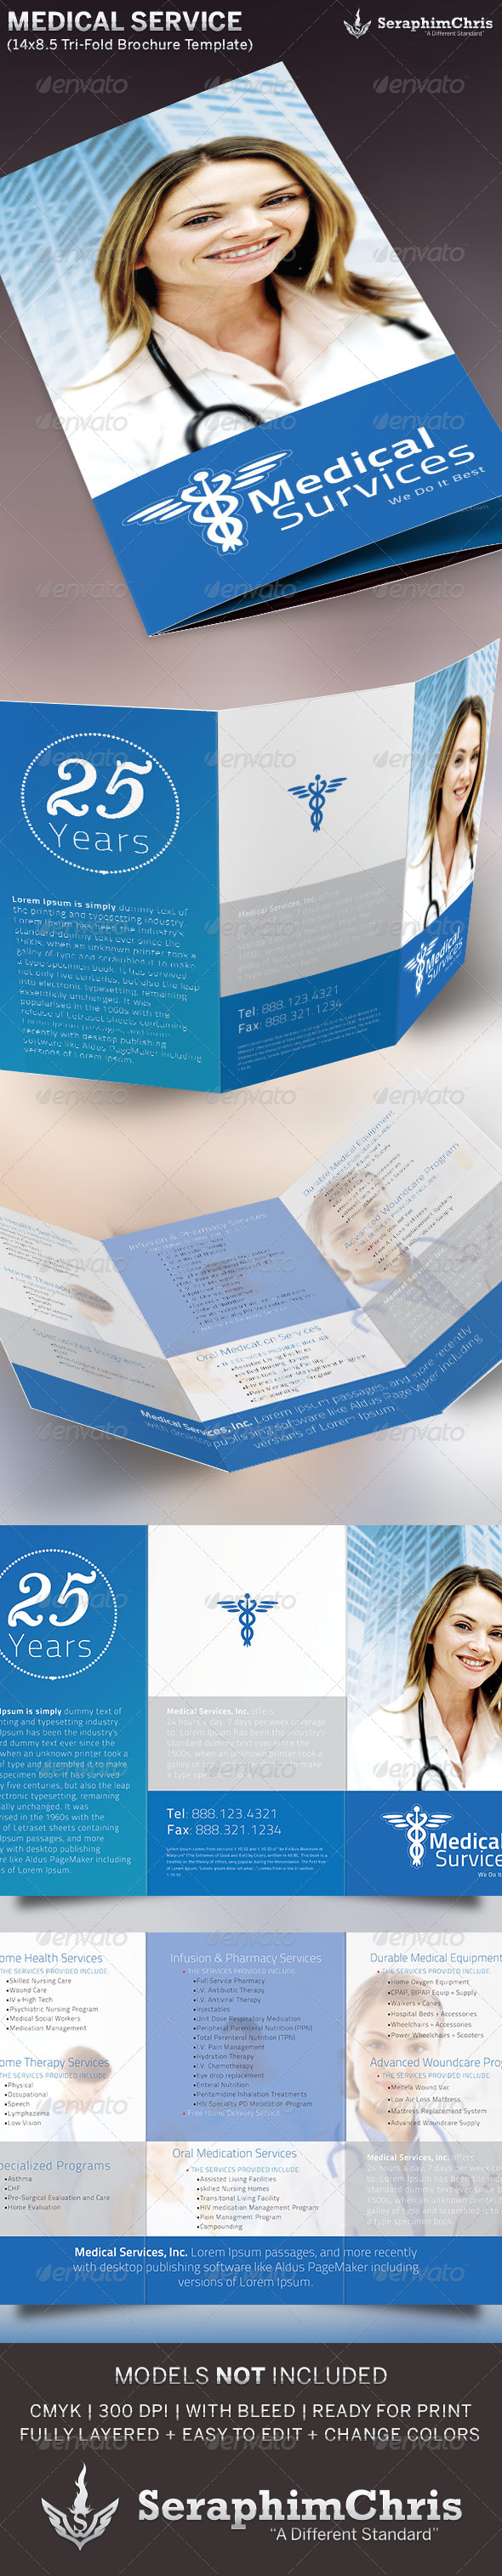 GraphicRiver Medical Service Tri-Fold Brochure Template 5352301